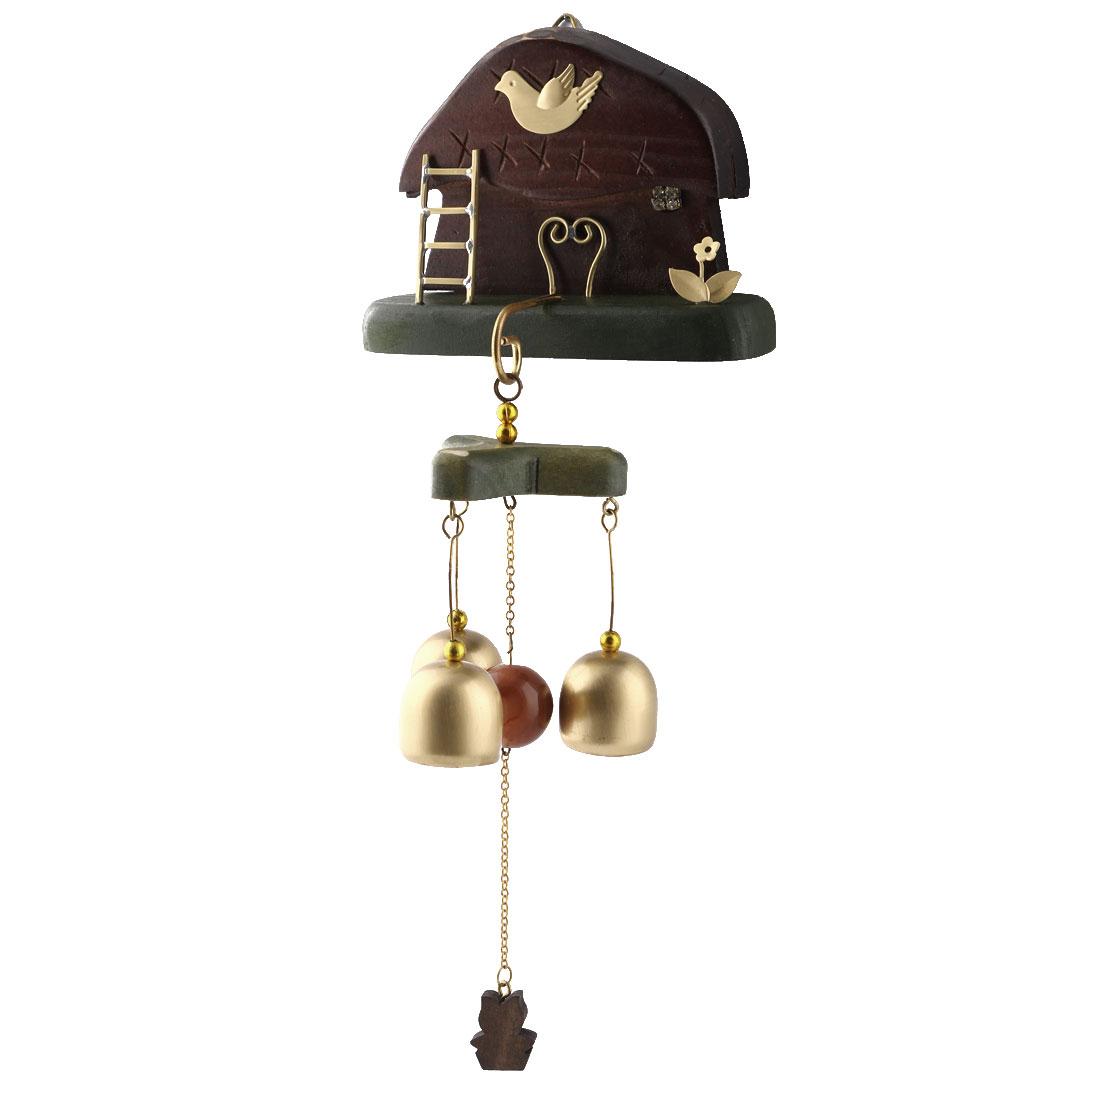 Living Room Copper Vintage Style Birthday Gift Hanging Wind Bell Chime Windbell